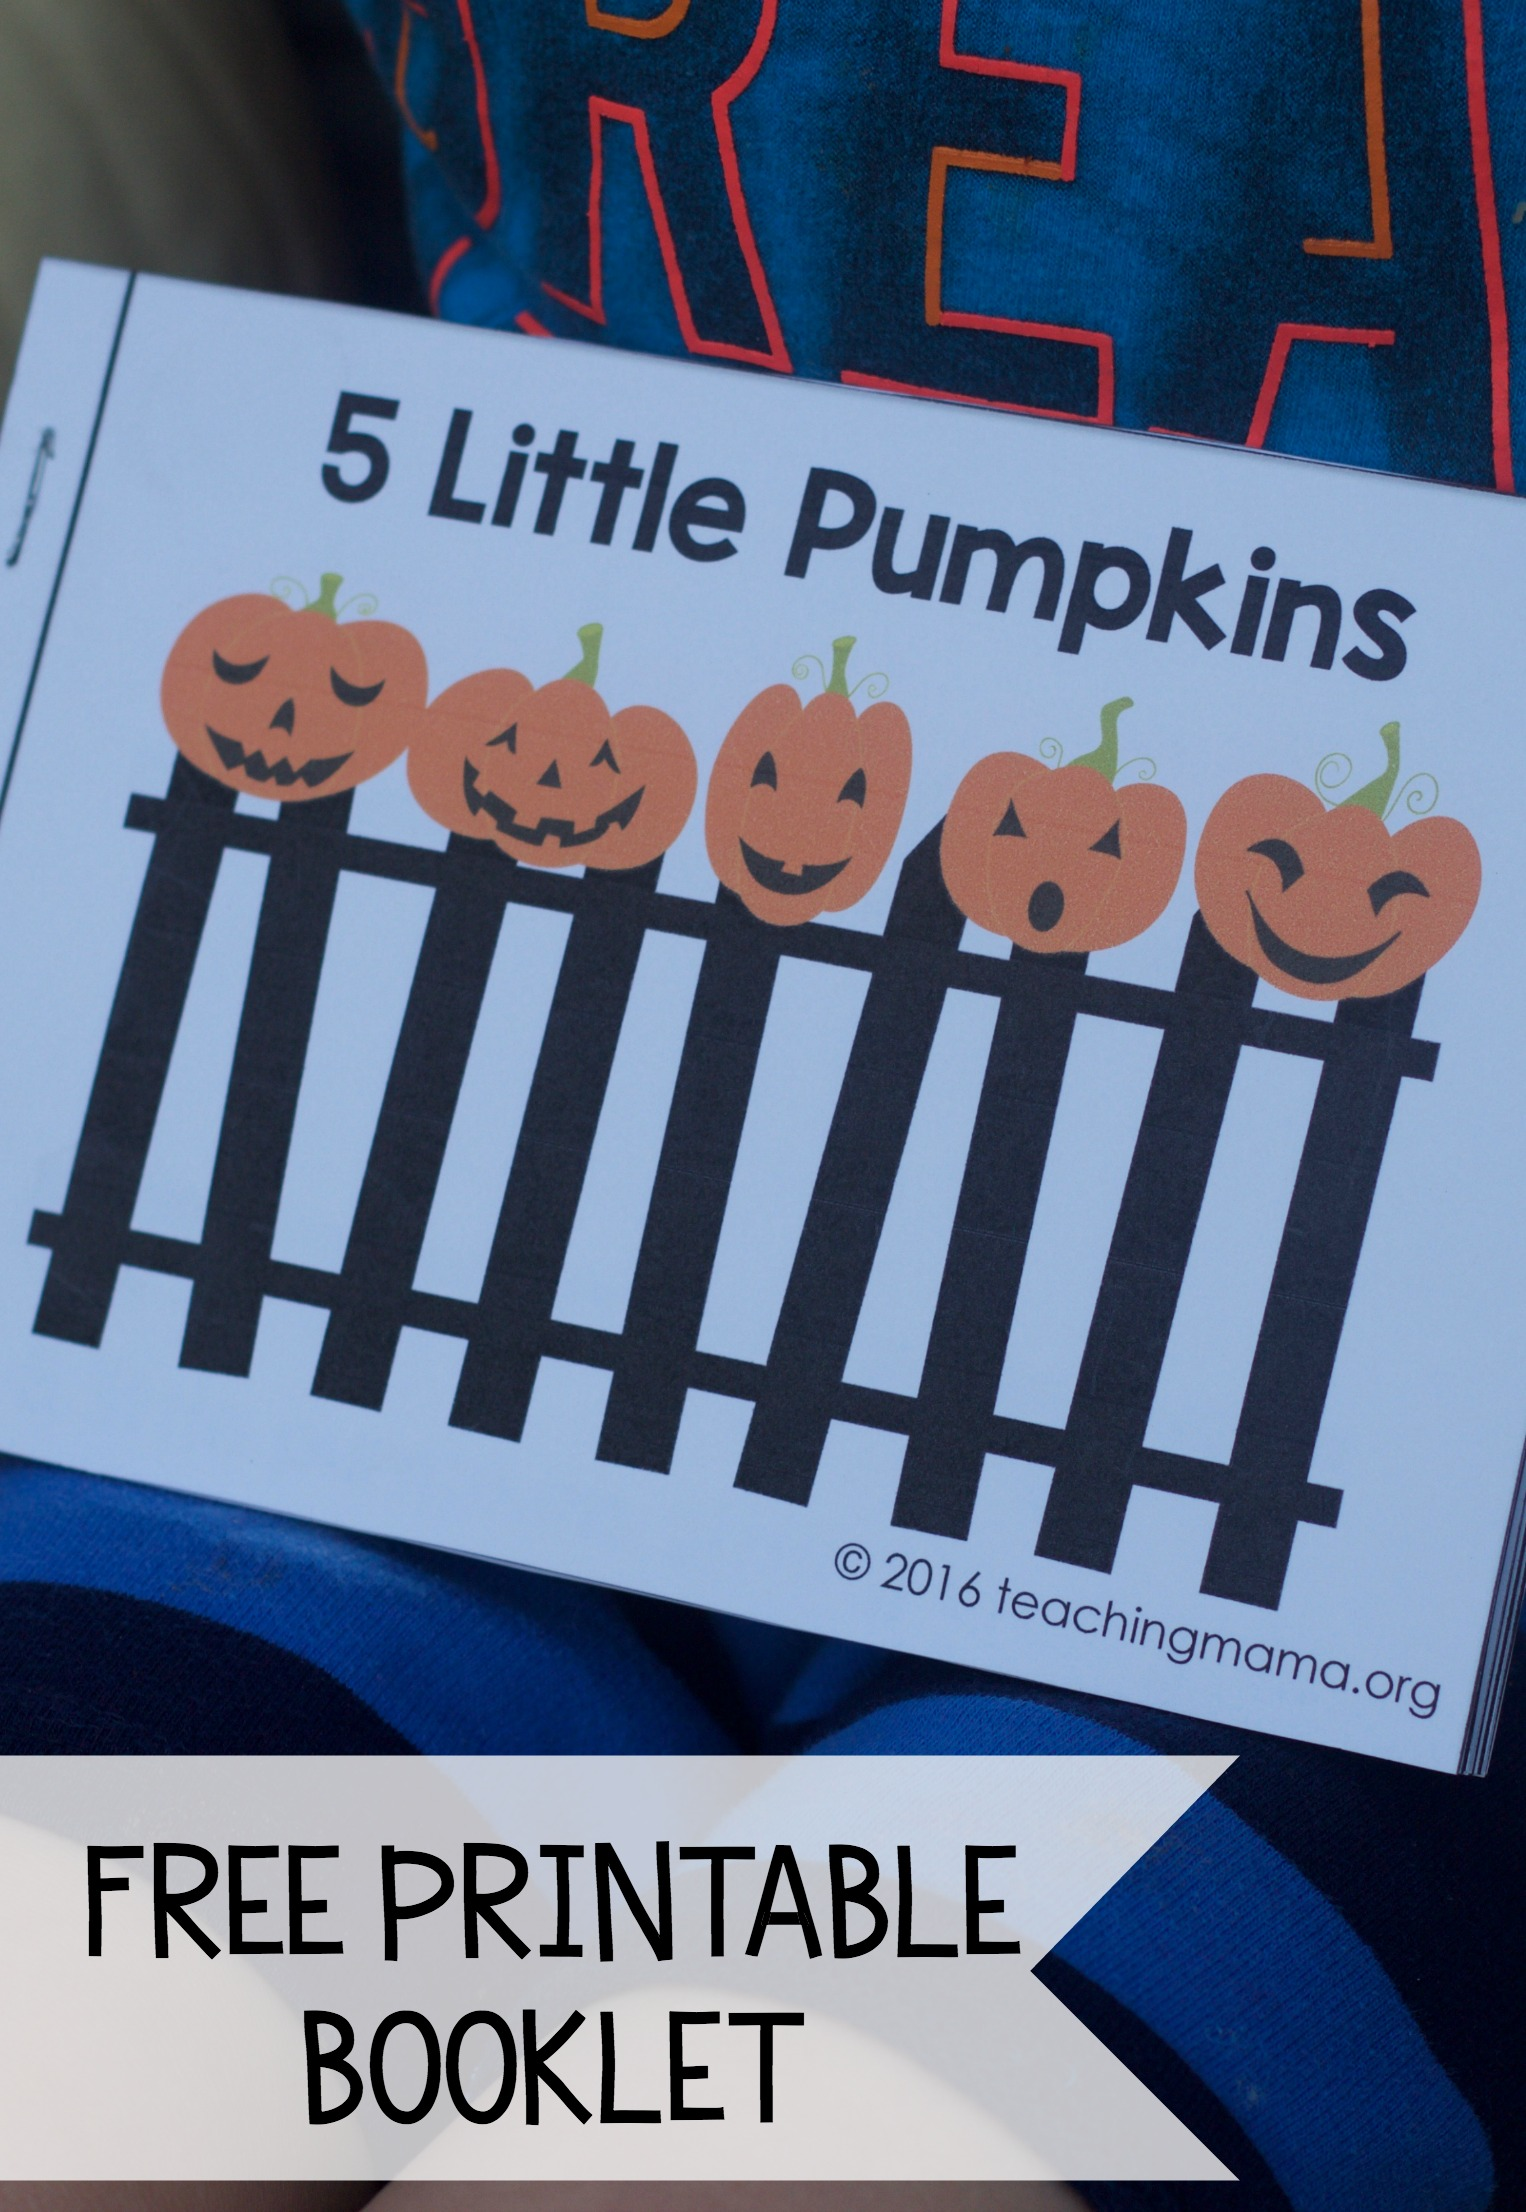 picture relating to 5 Little Pumpkins Printable named 5 Small Pumpkins - Free of charge Rhyme Booklet